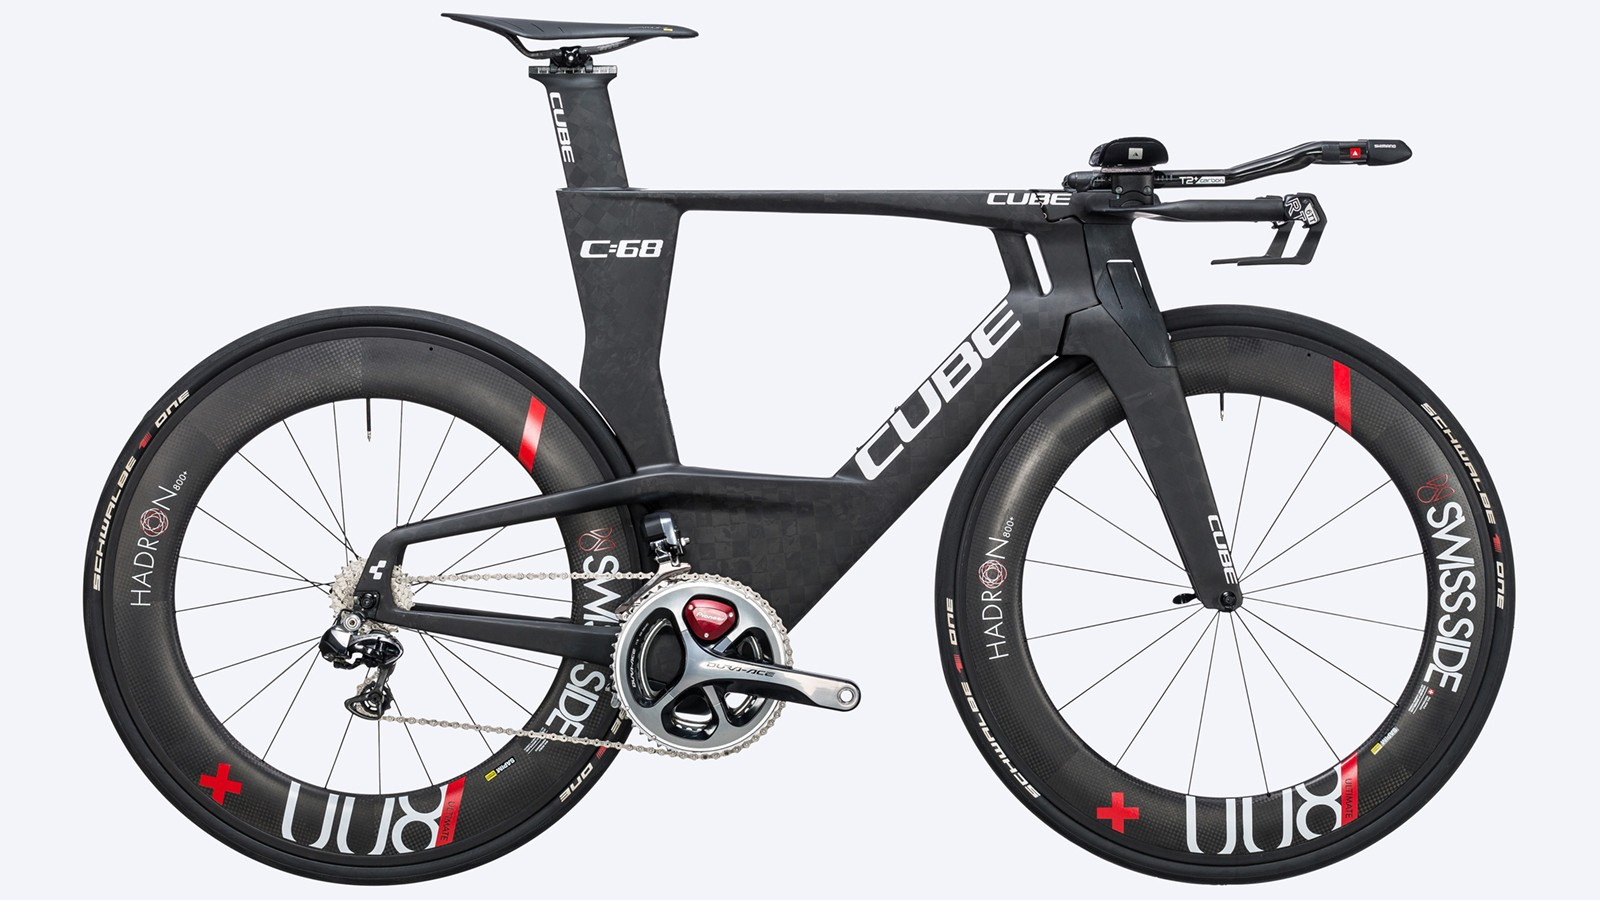 It's plausible that, at a distance, the profile of this bike could be mistaken for a B-2 bomber